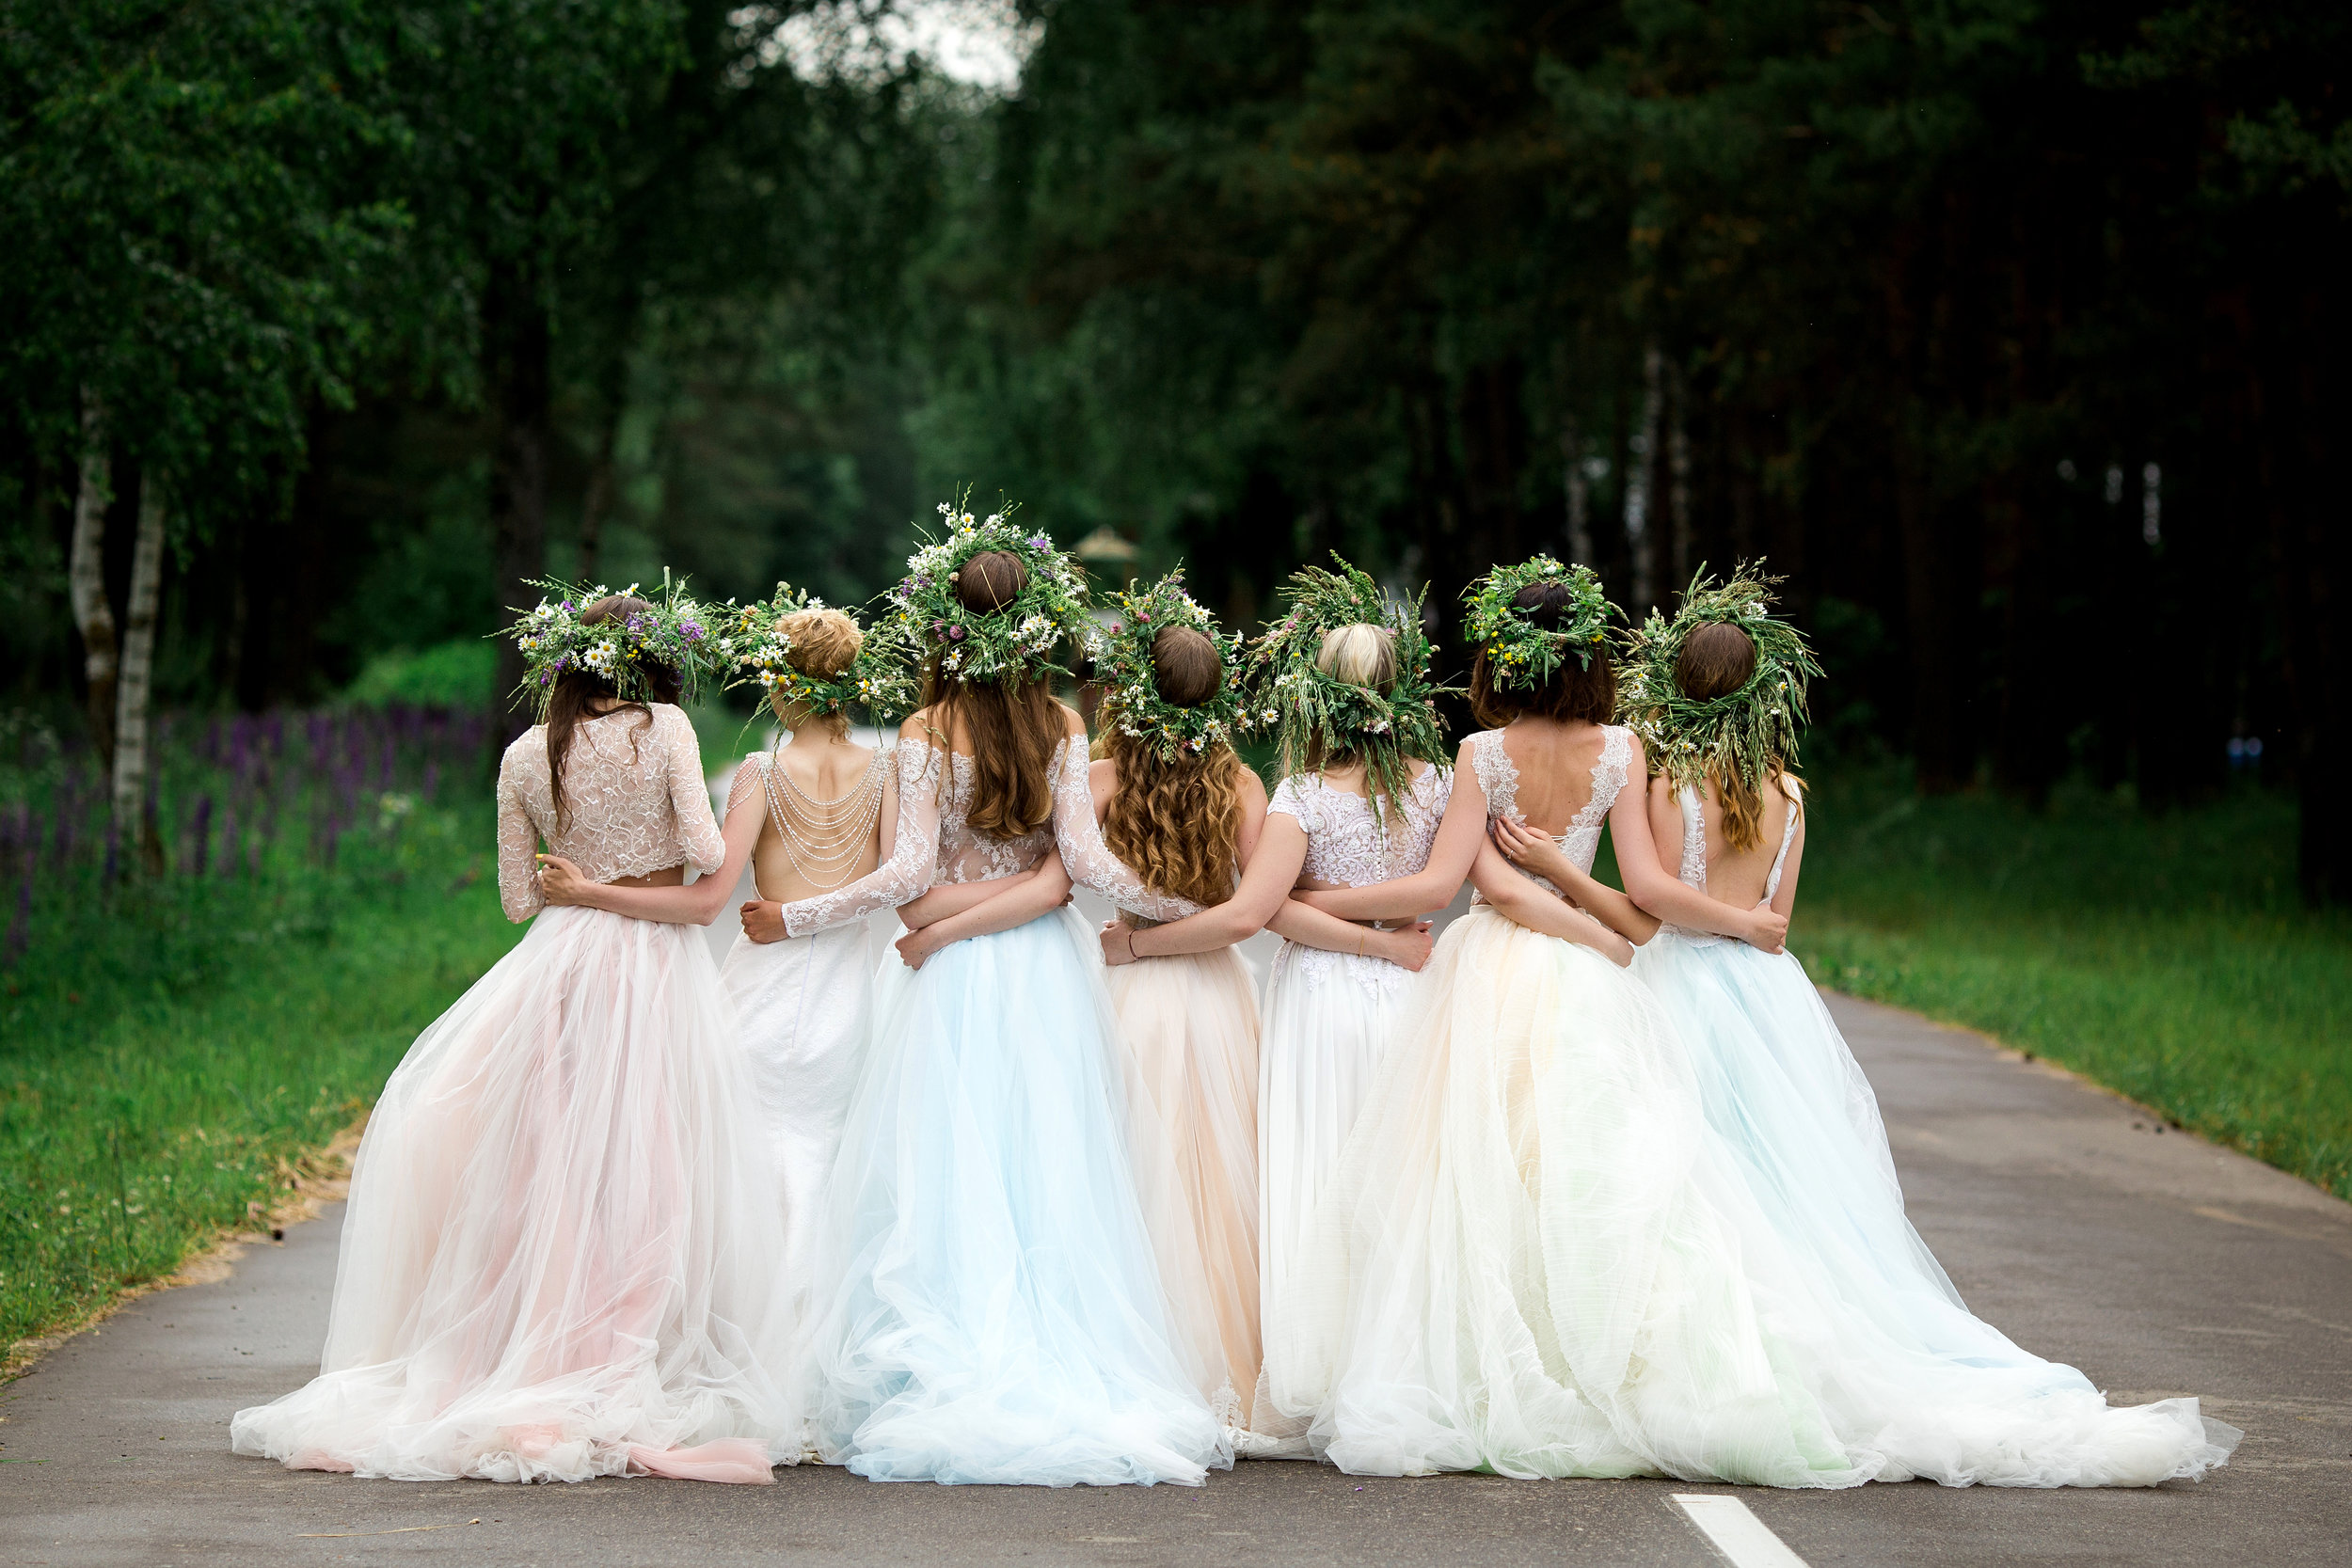 Bridal parties beautiful street photoshoot.